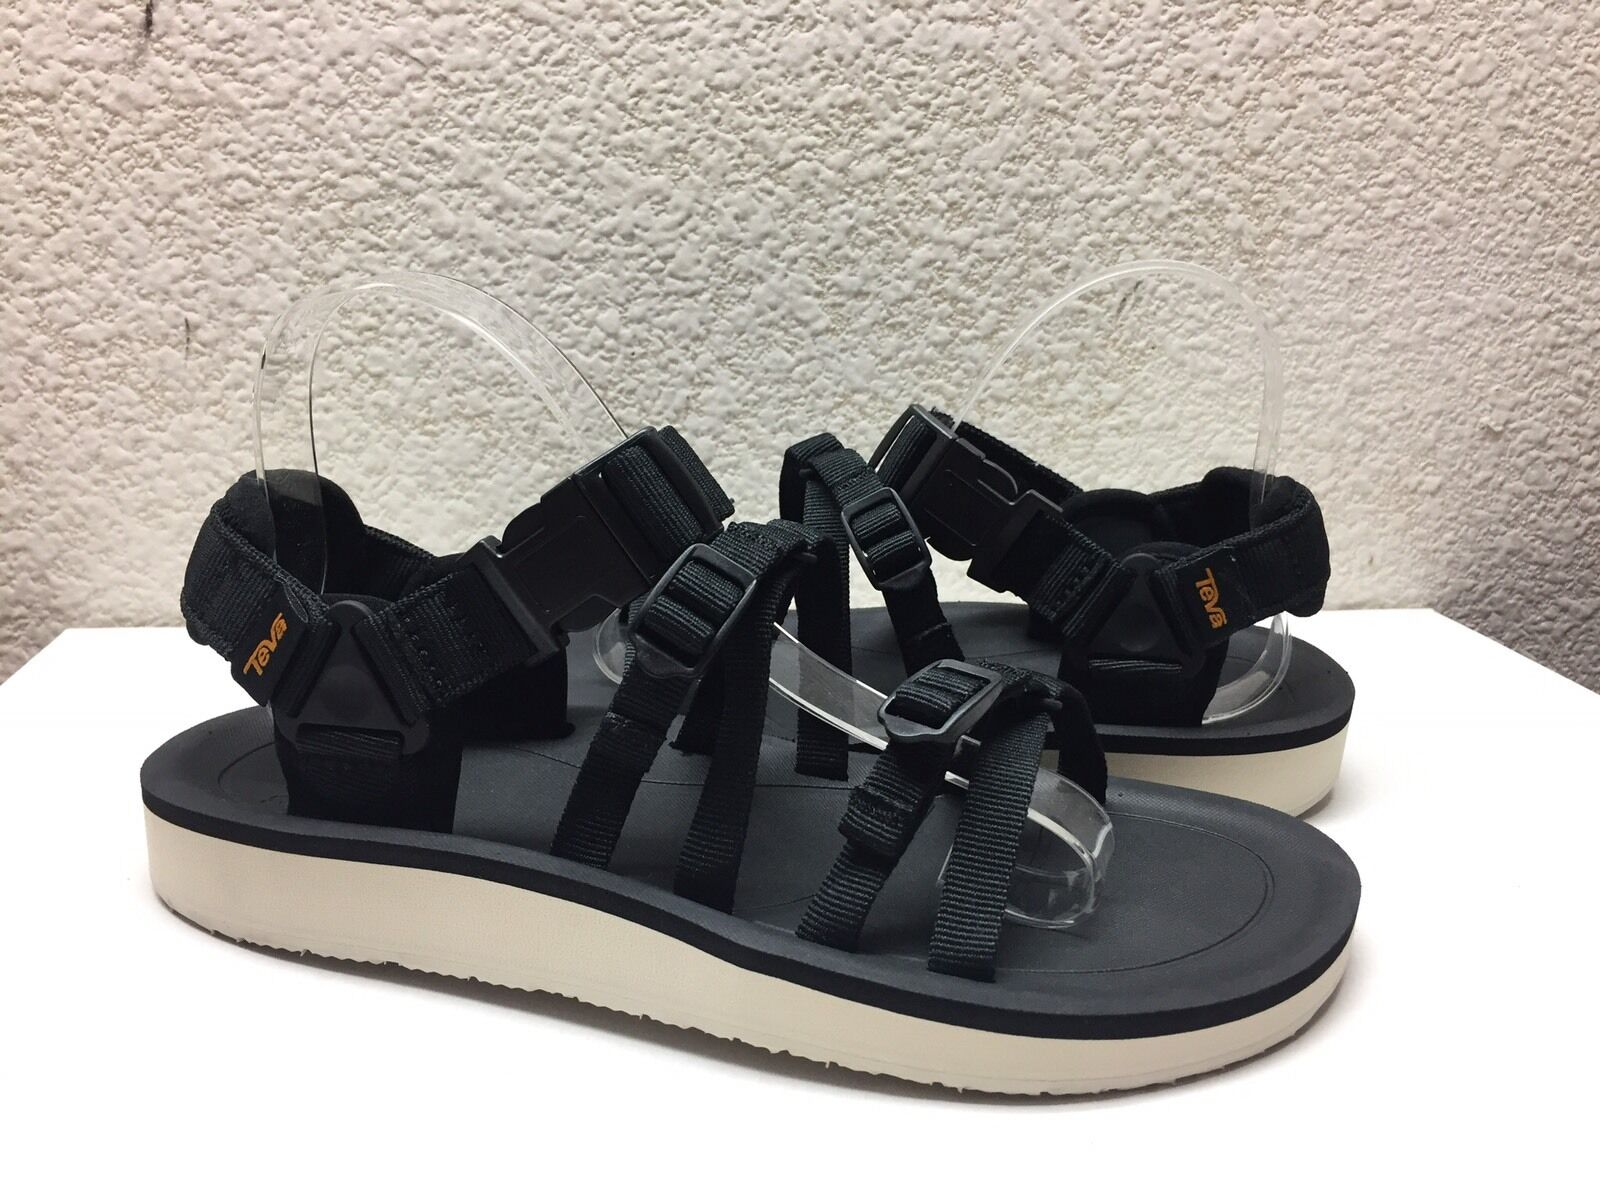 TEVA WOMEN ALP PREMIER BLACK STRAPPY 9 SPORT SANDALS US 9 STRAPPY / EU 40 / UK 7 NIB 7465ea